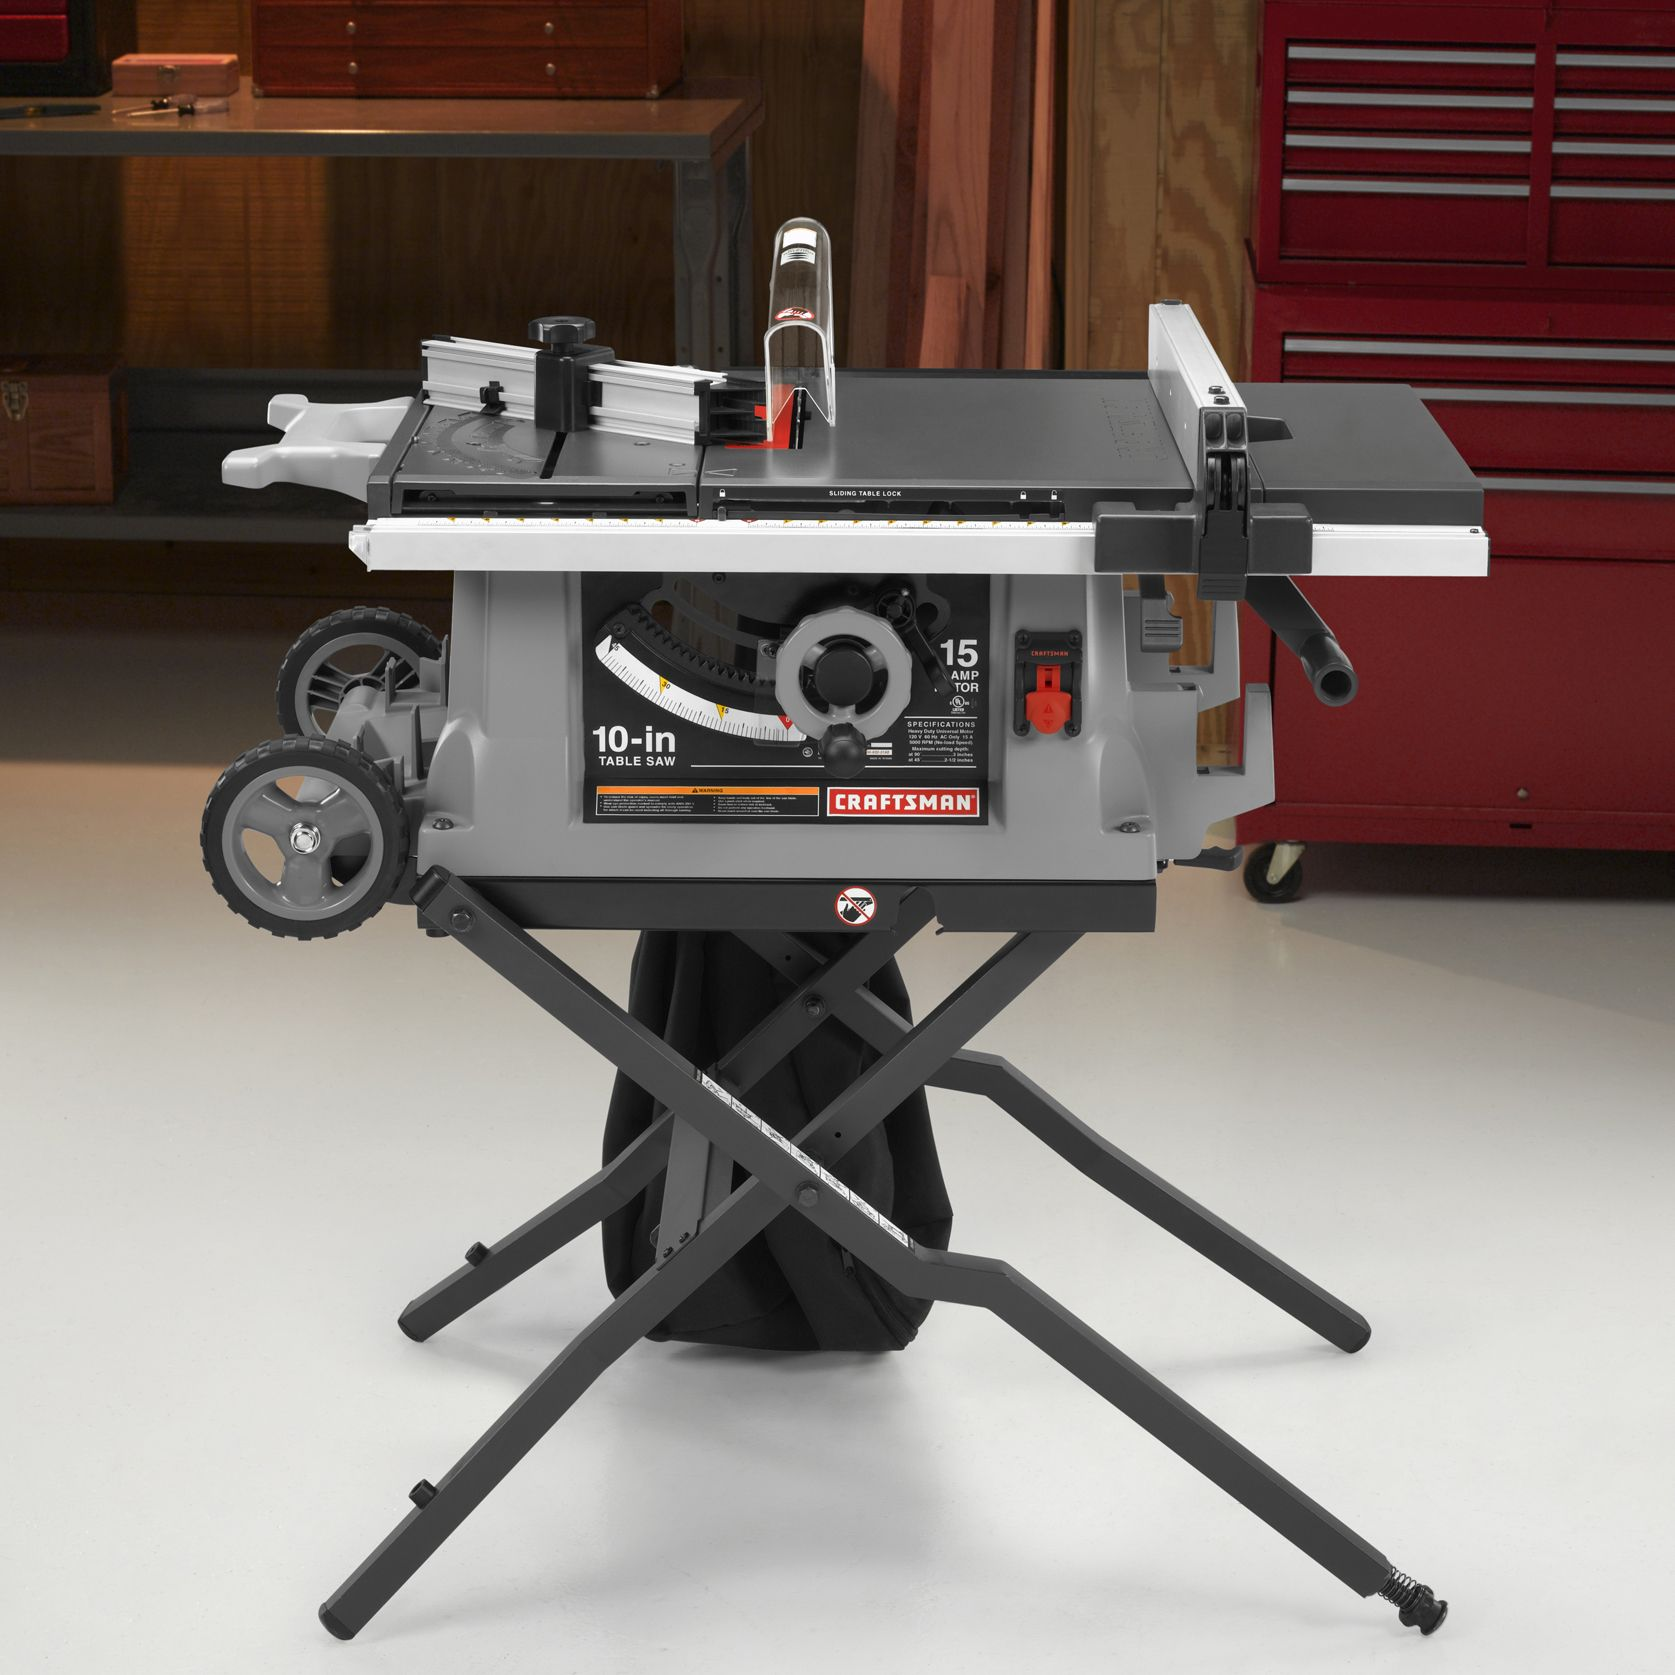 hight resolution of spin prod 242069101 wid 200 hei 250 craftsman table saw parts model 315218060